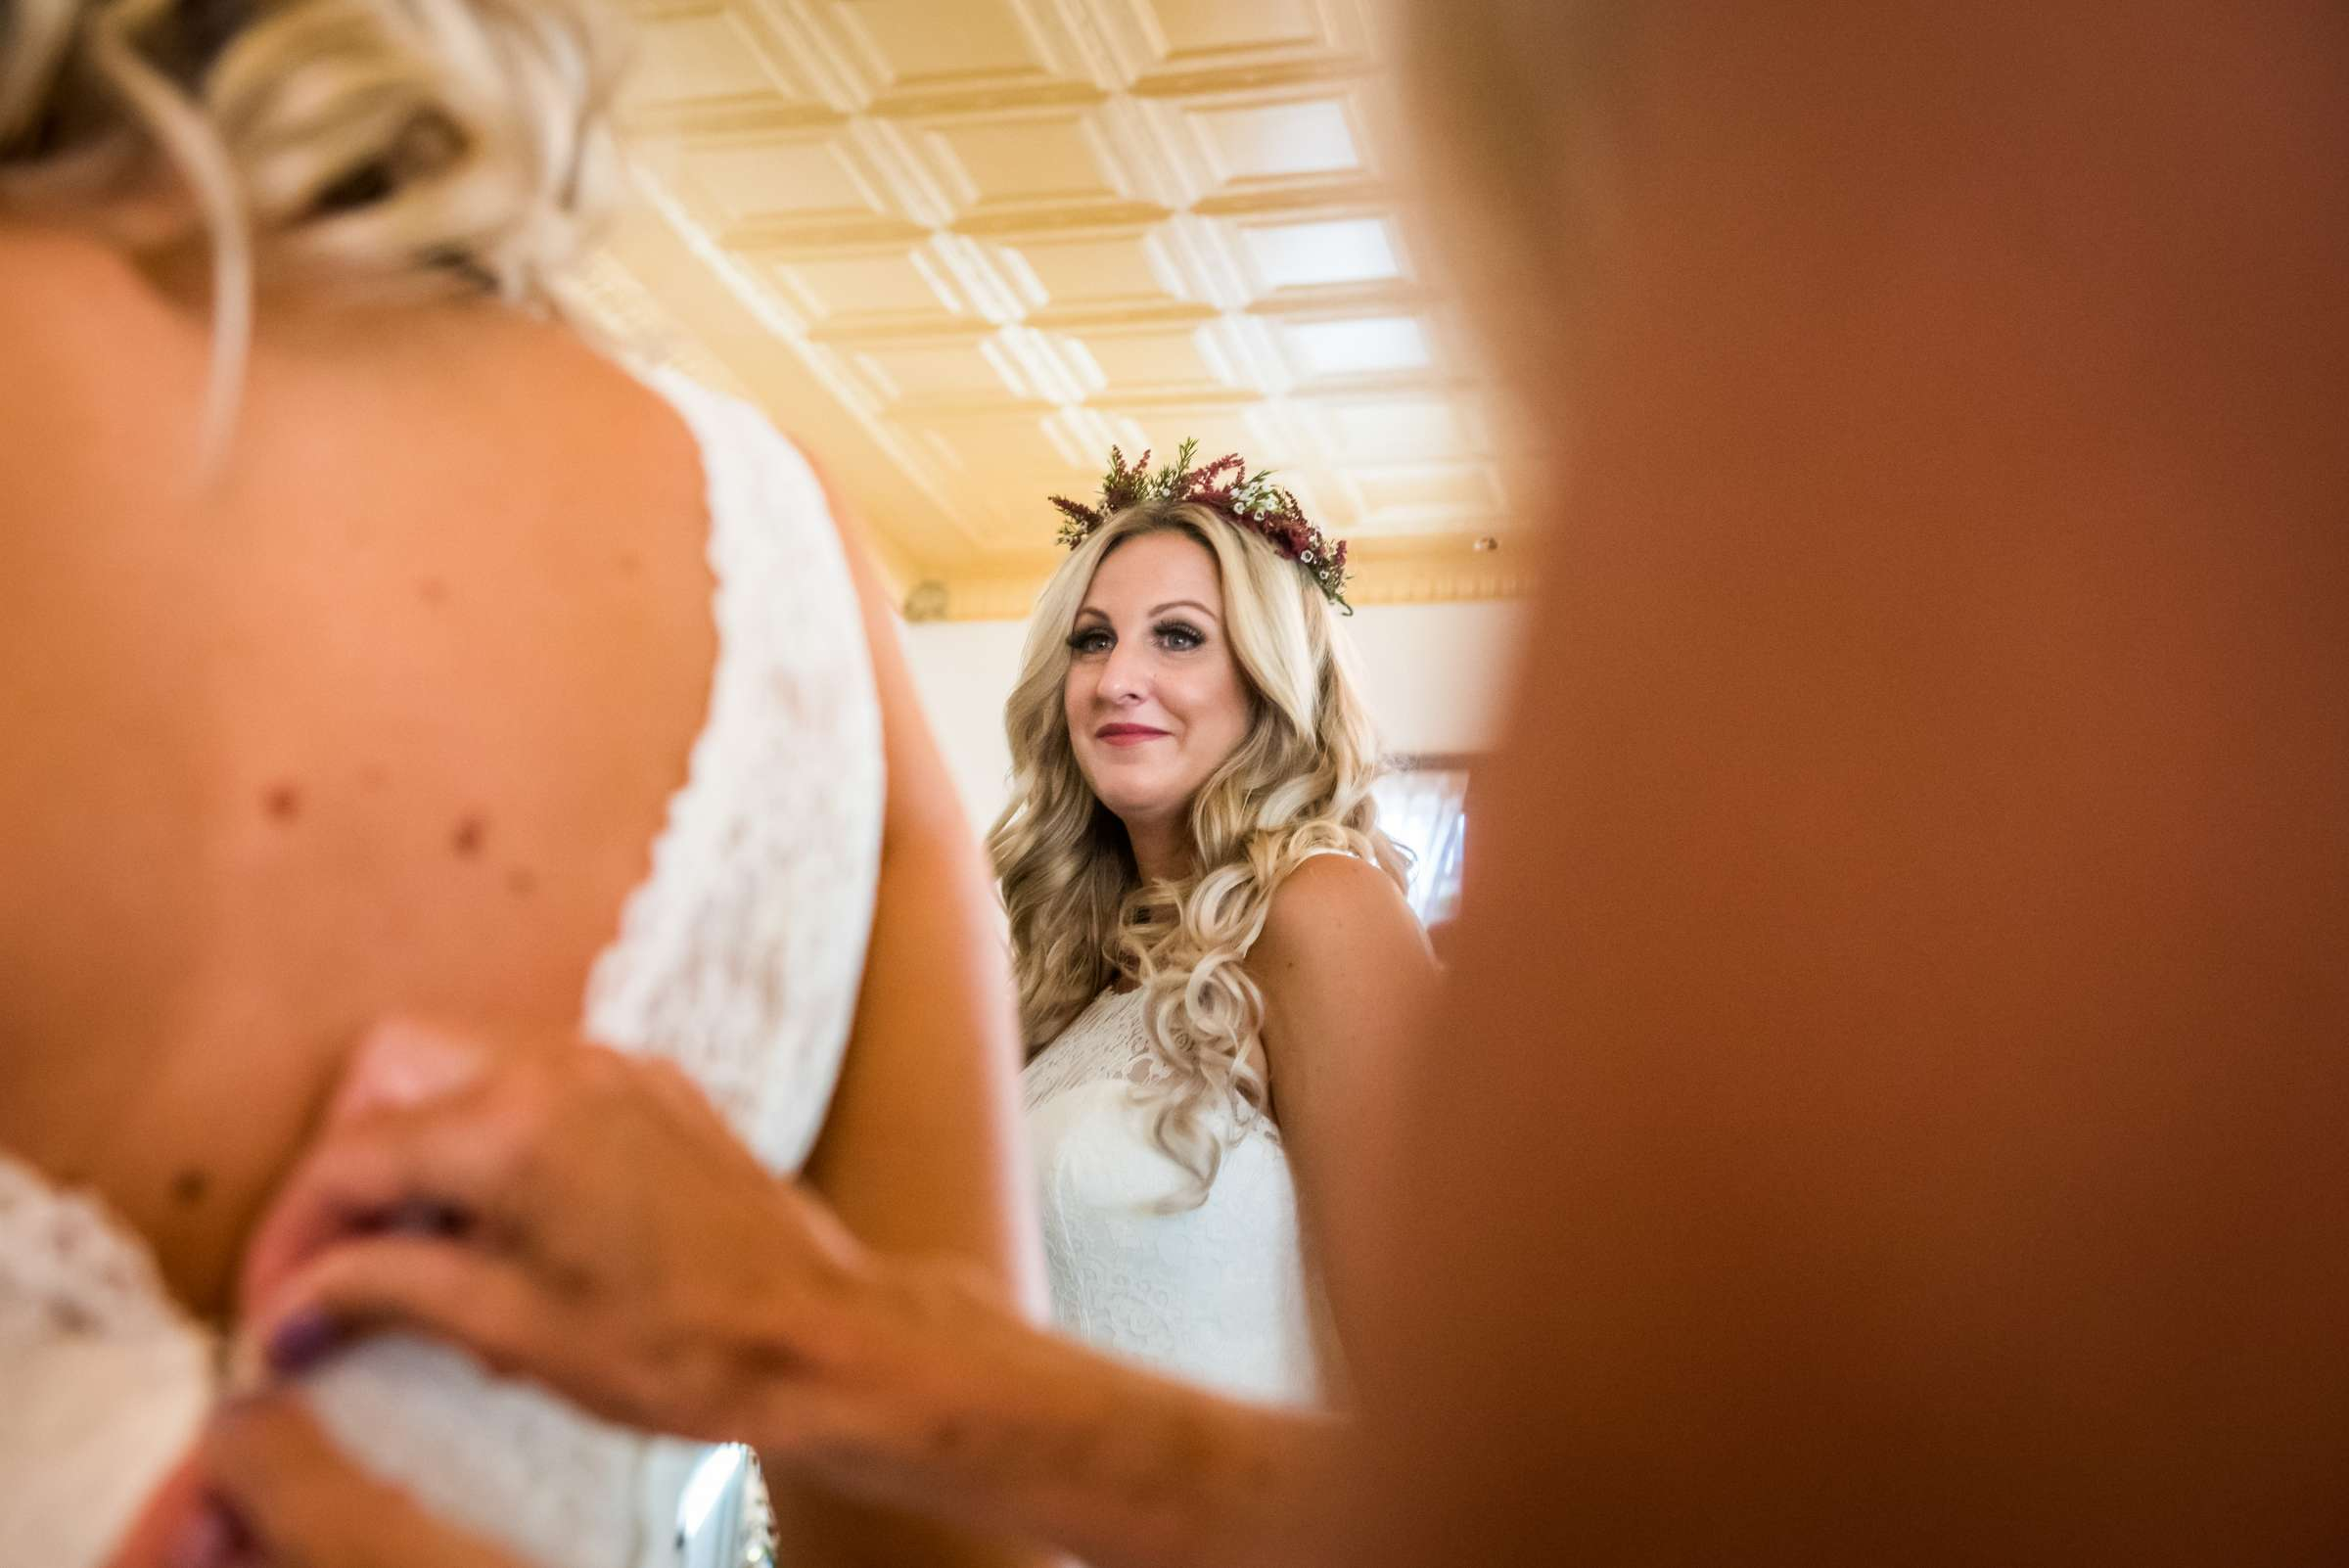 Twin Oaks House & Gardens Wedding Estate Wedding, Brittany and Sean Wedding Photo #46 by True Photography